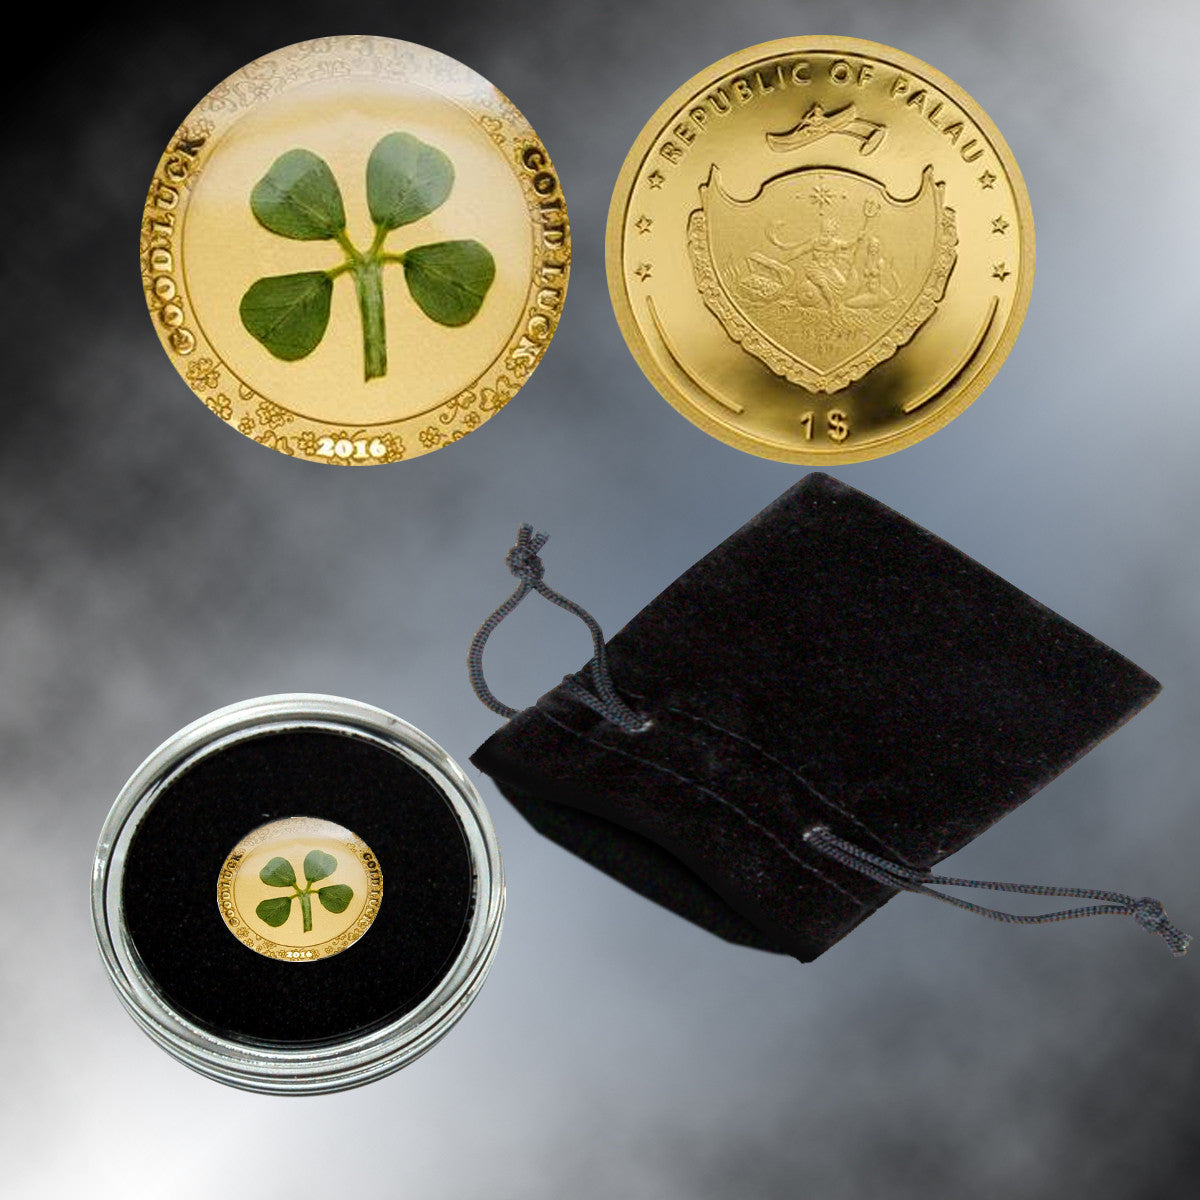 Four-Leaf Clover .9999 Gold $1 Palau Coin Proof Limited-Edition of 2,016